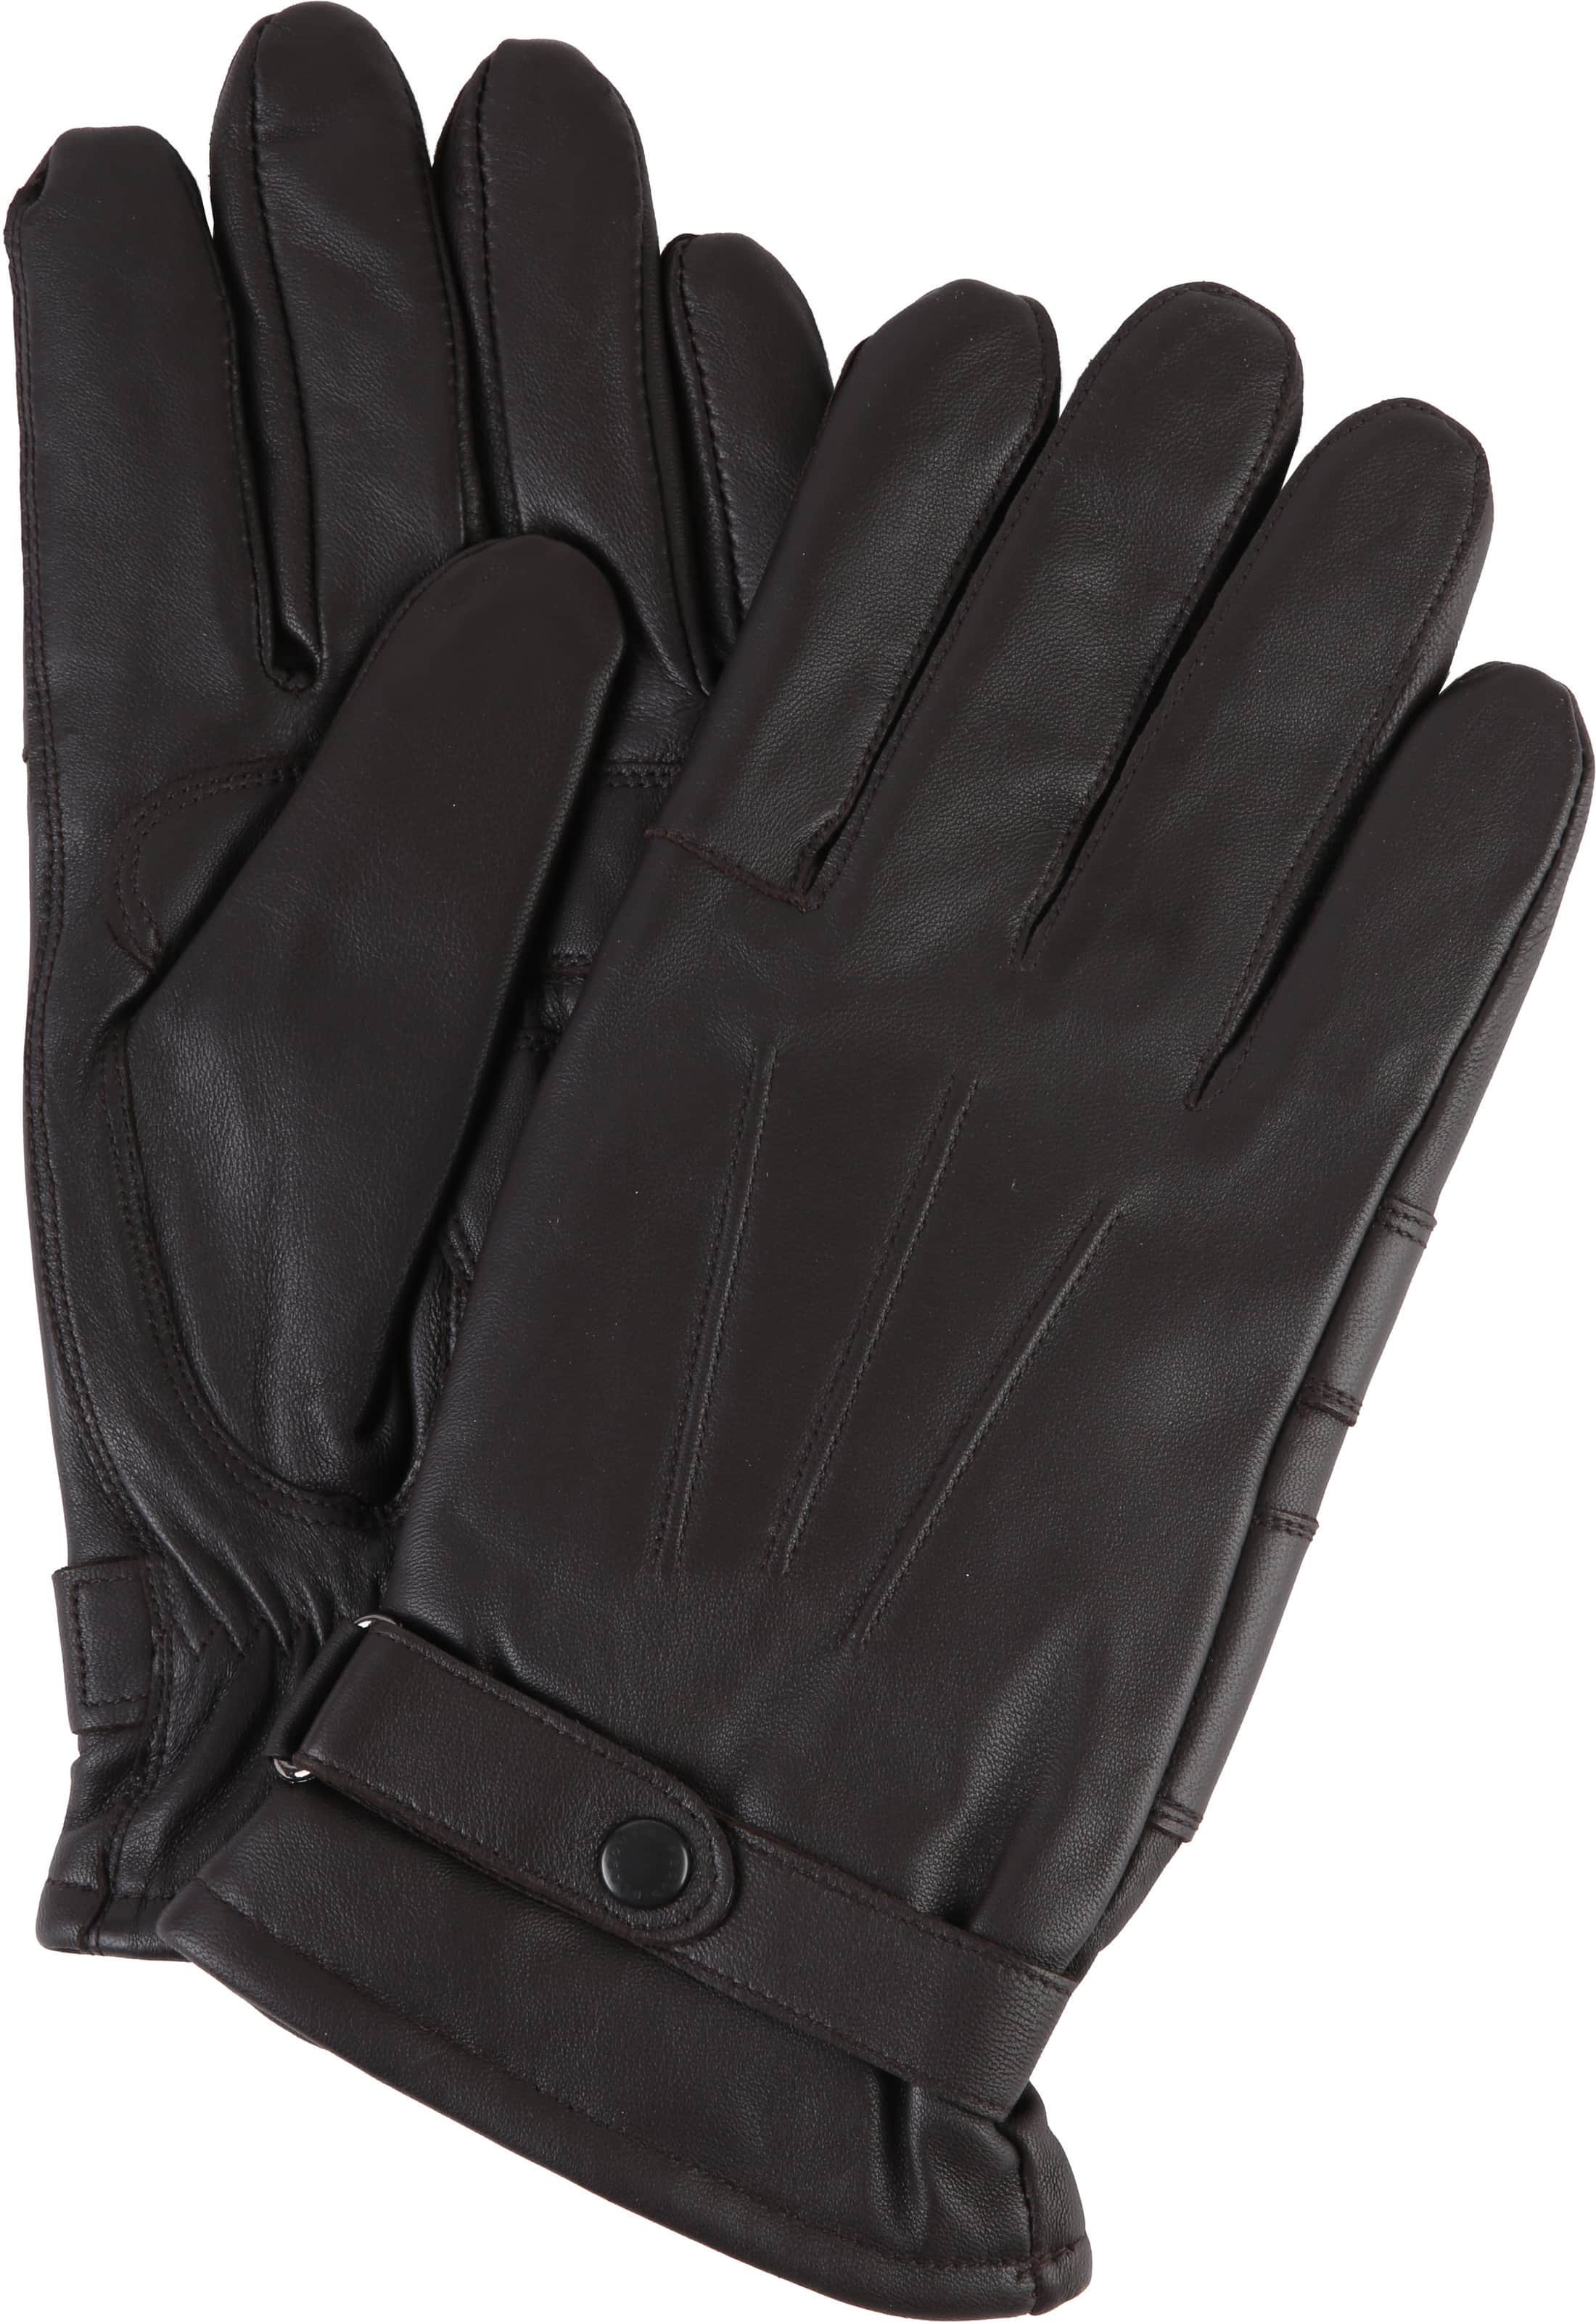 Barbour Gloves Smooth Leather Brown  foto 0